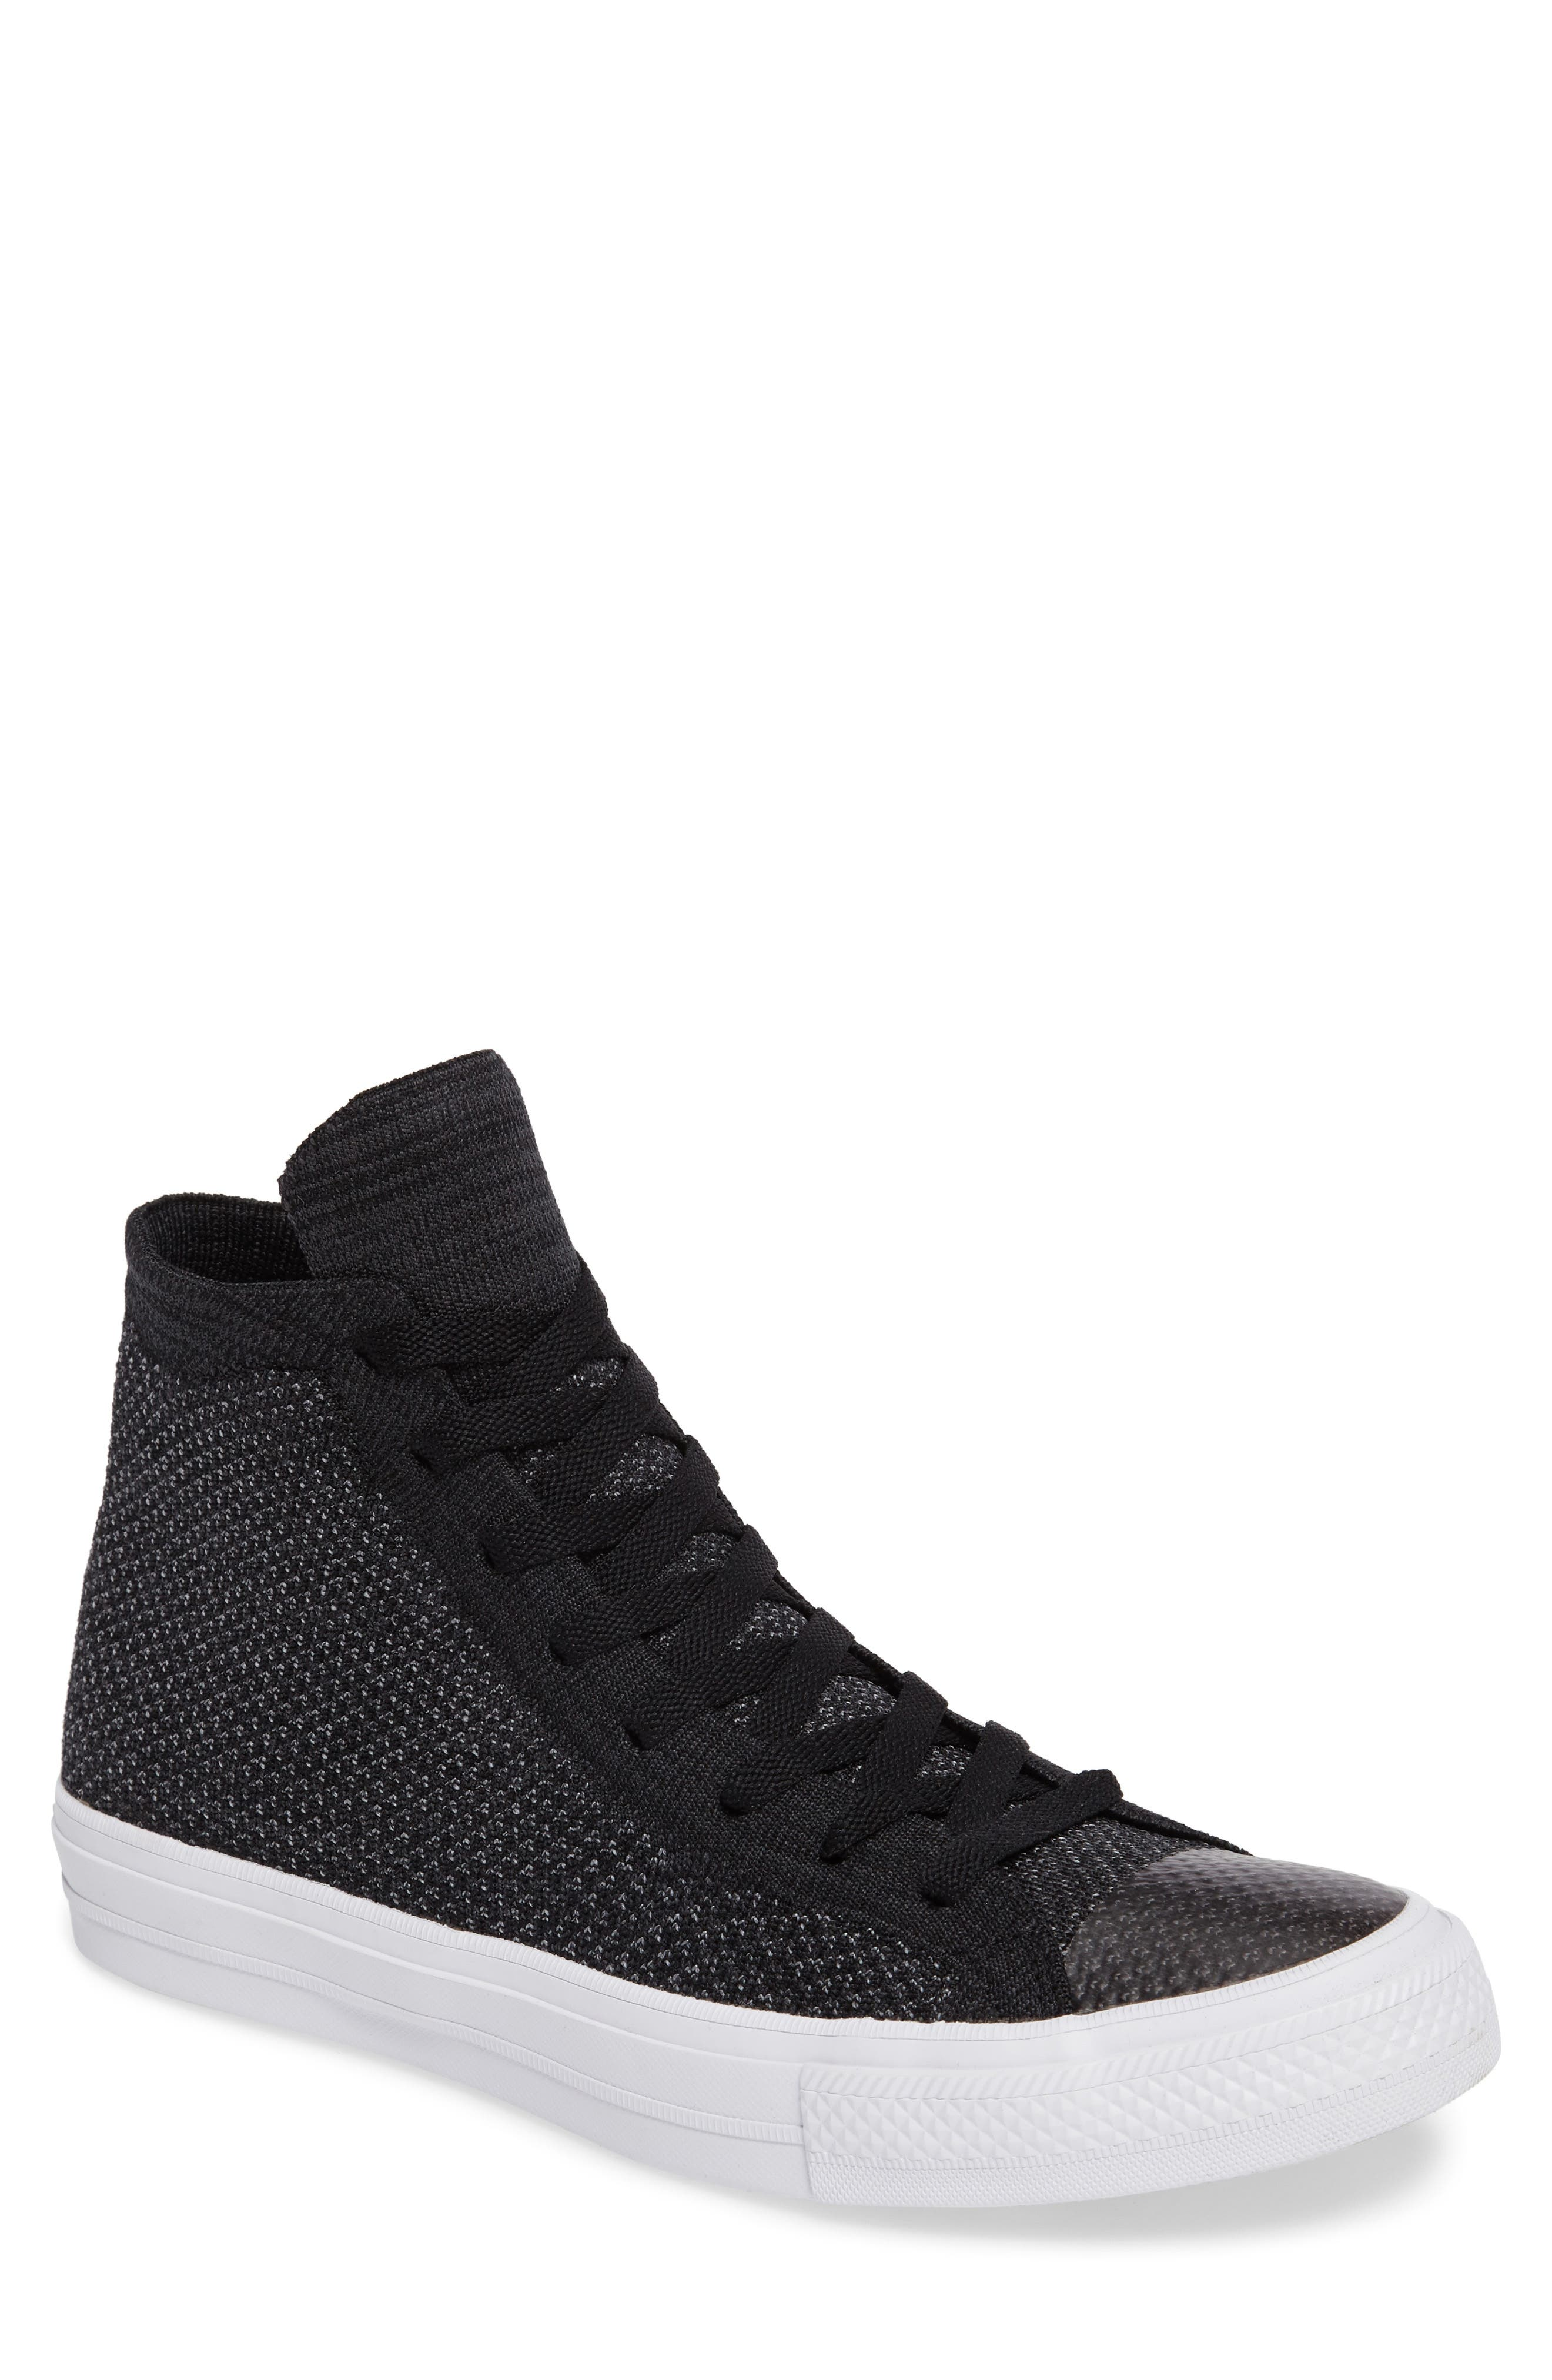 Chuck Taylor<sup>®</sup> All Star<sup>®</sup> Flyknit Hi Sneaker,                         Main,                         color,